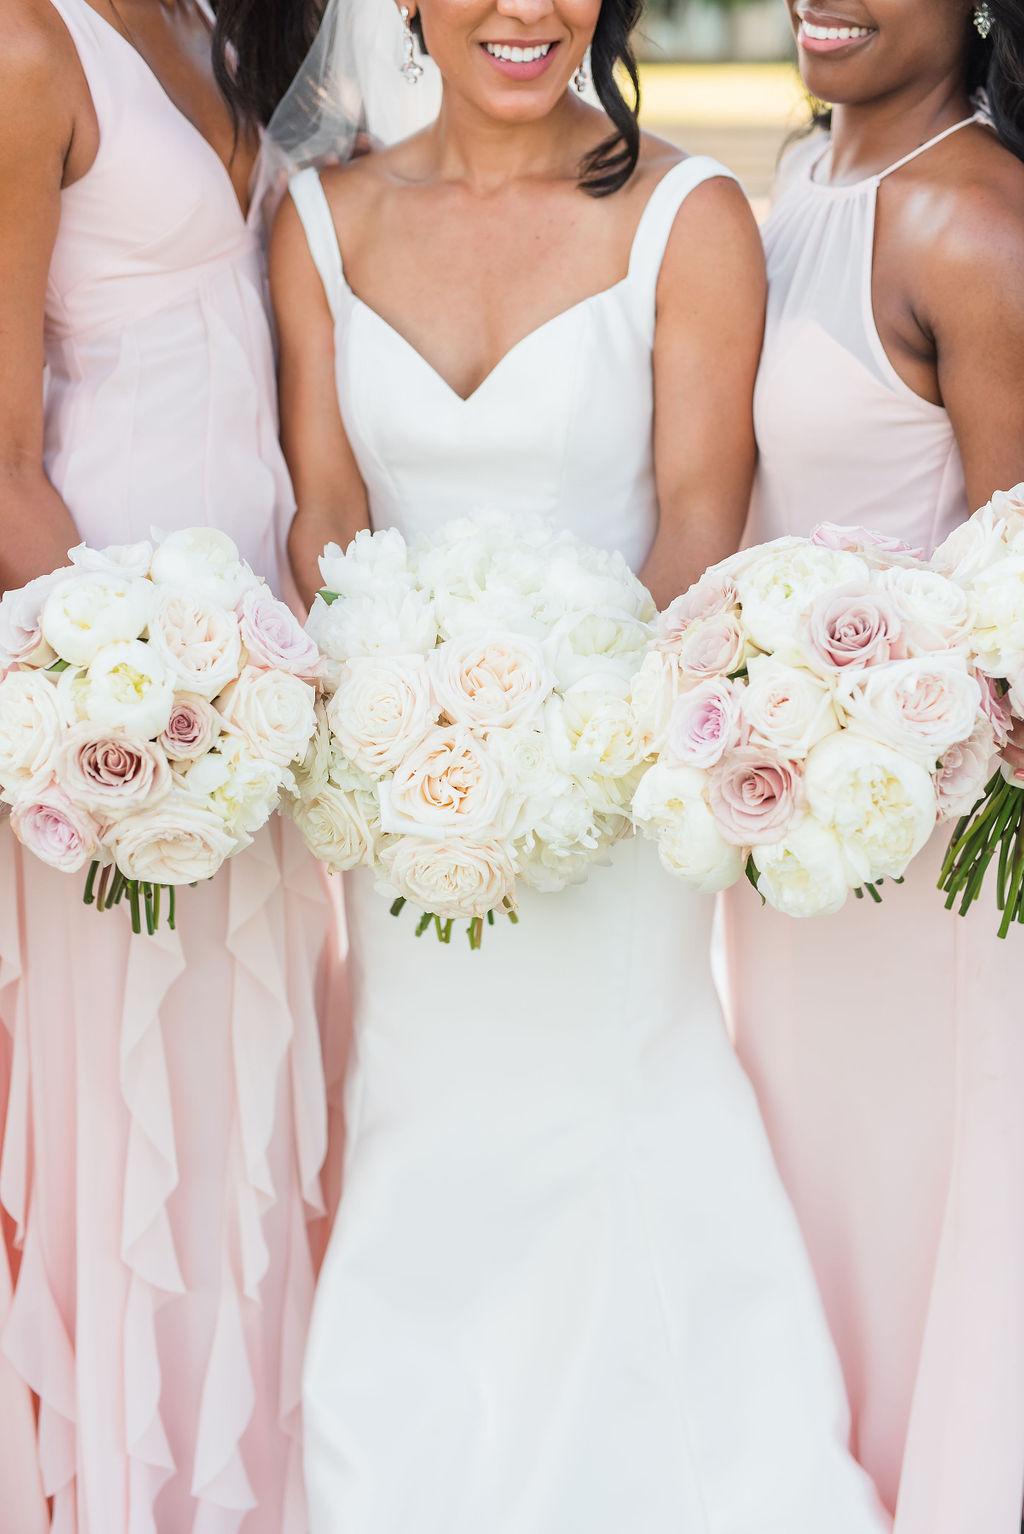 White and pink wedding bouquet inspiration